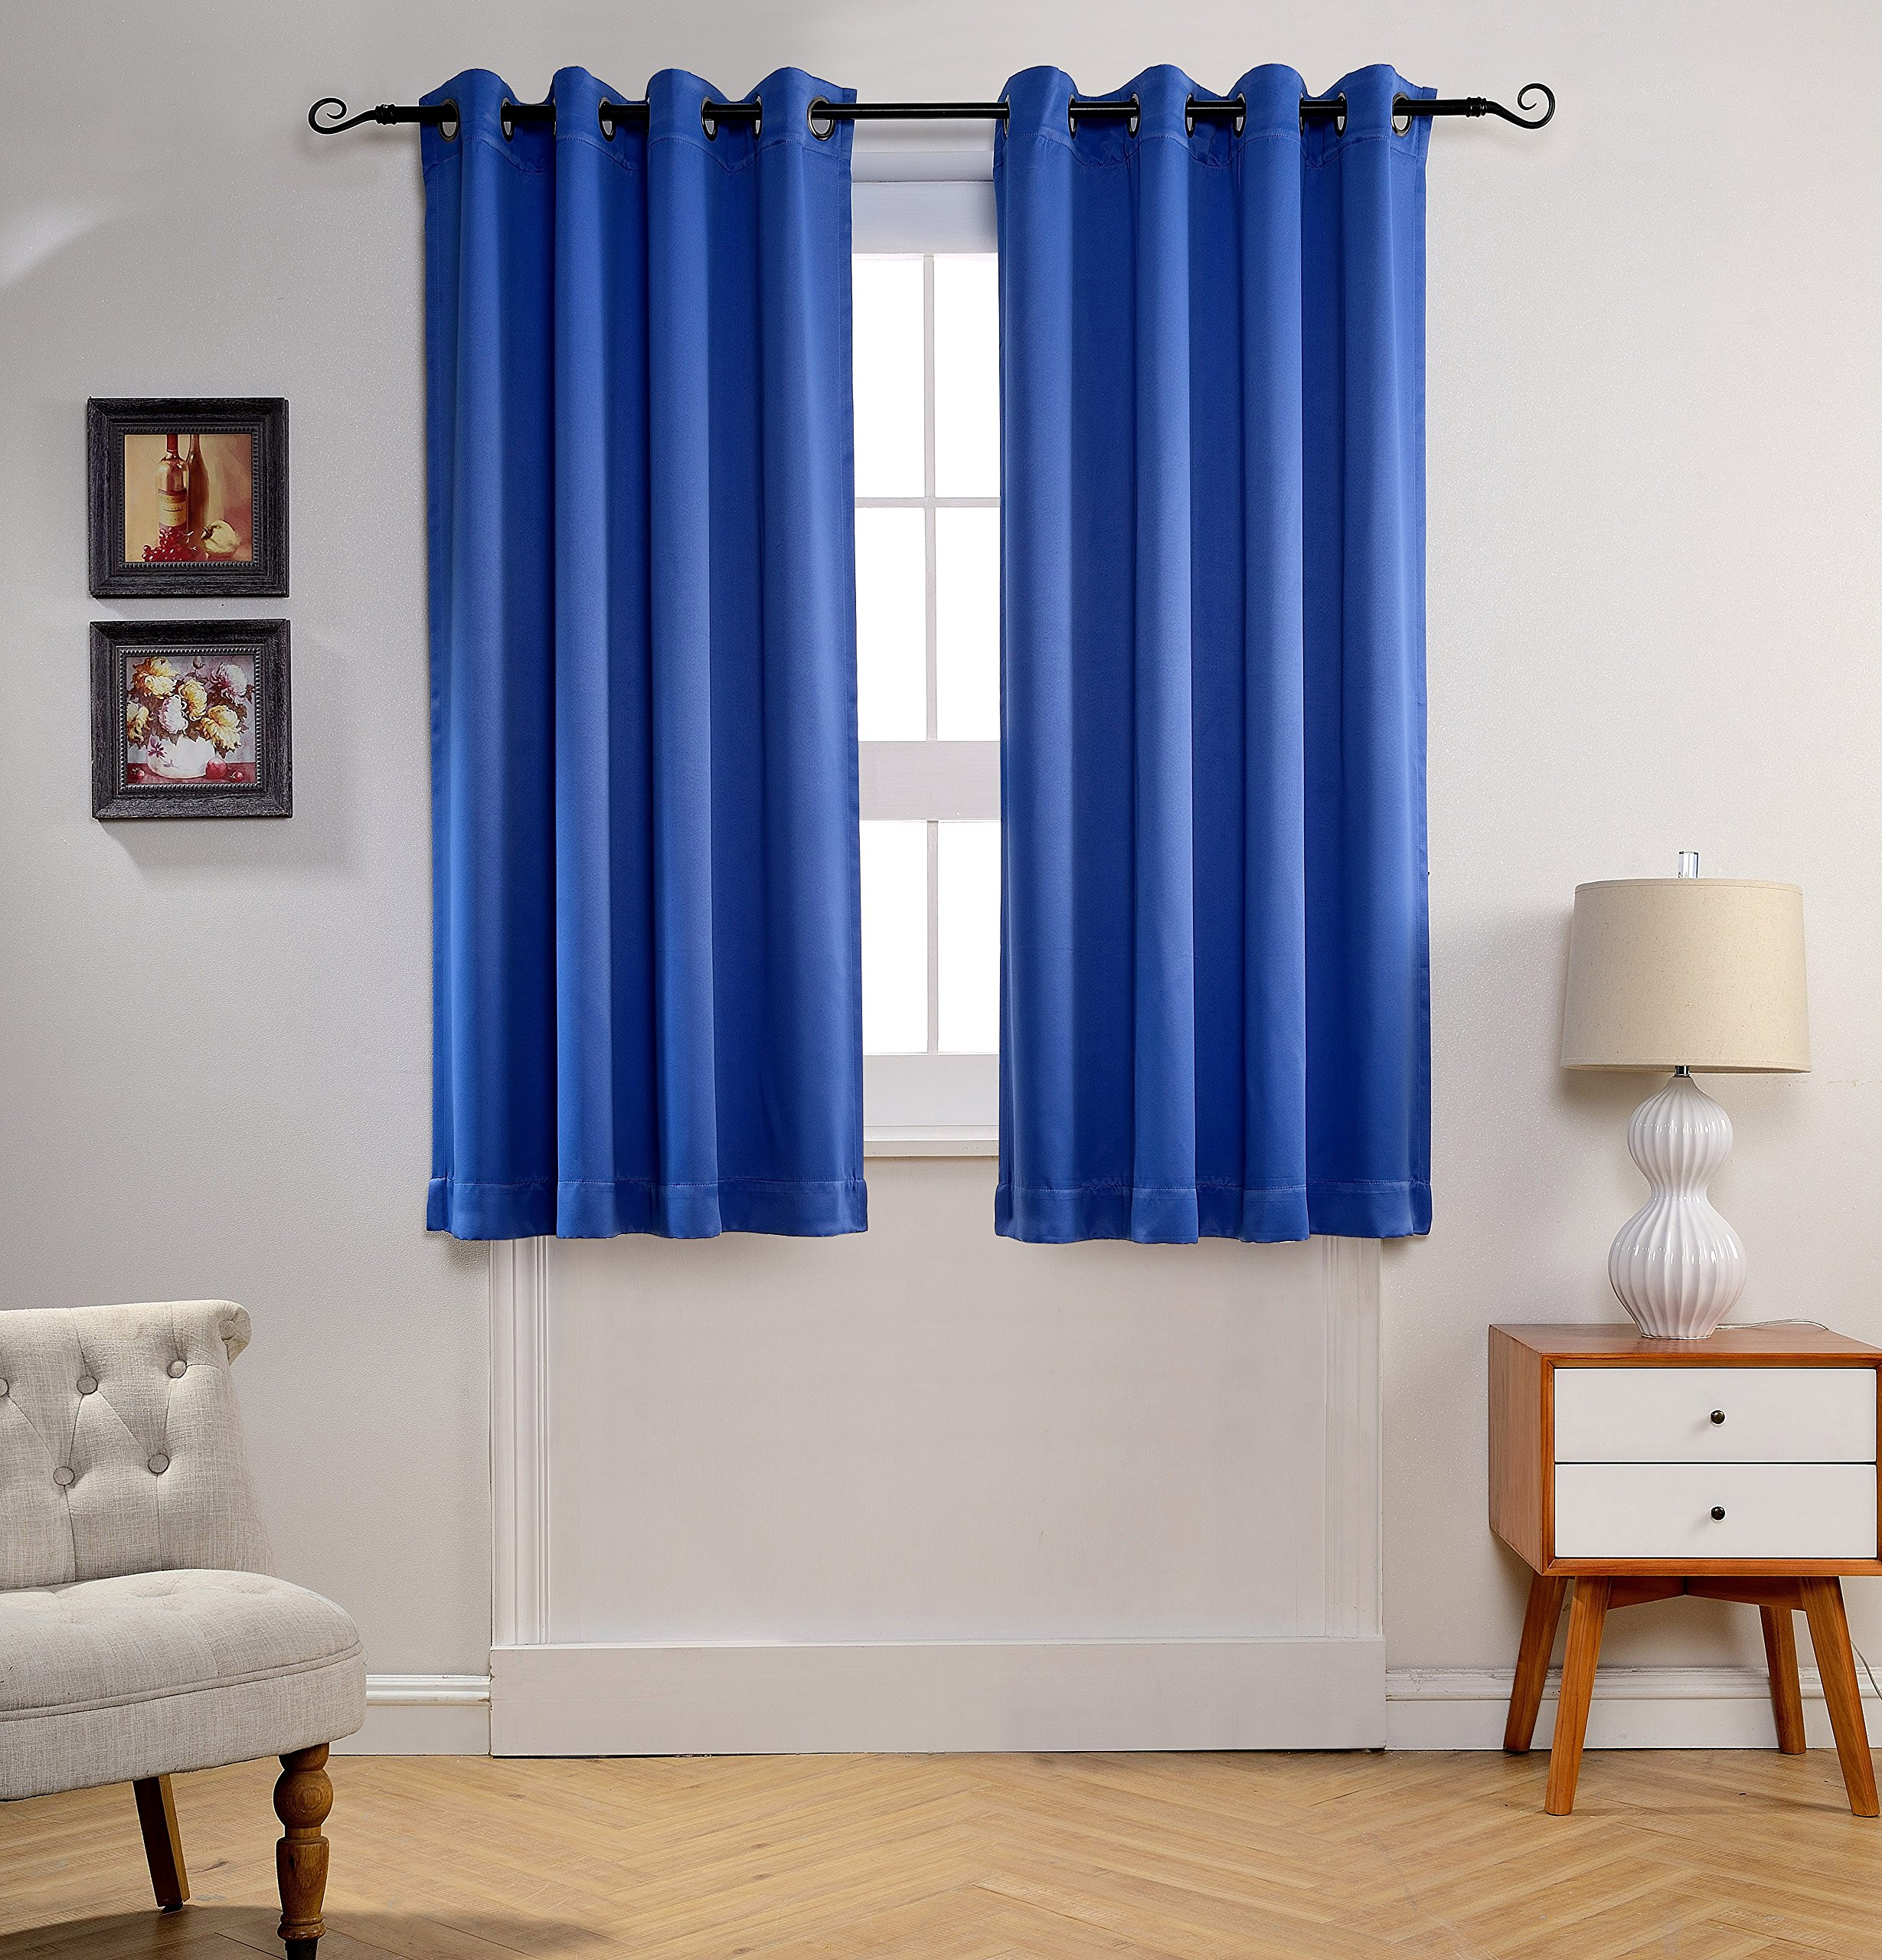 amazon insulated com best panels blue salenels x curtains for full size sale fashion inspirations bedroom home royal photo clearance on thermal royalue astounding of curtain blackout